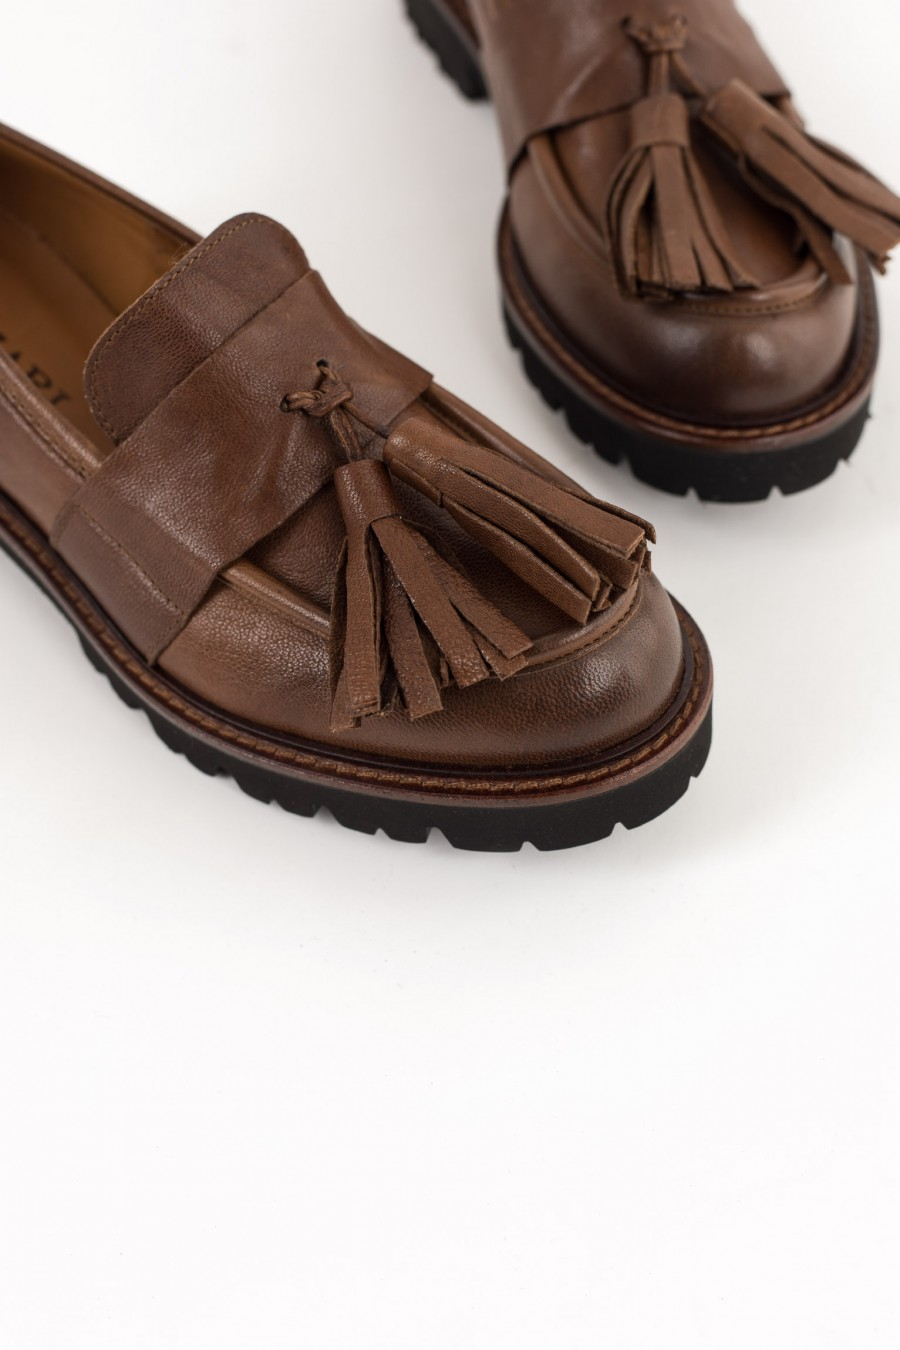 Rounded toe tobacco brown loafers